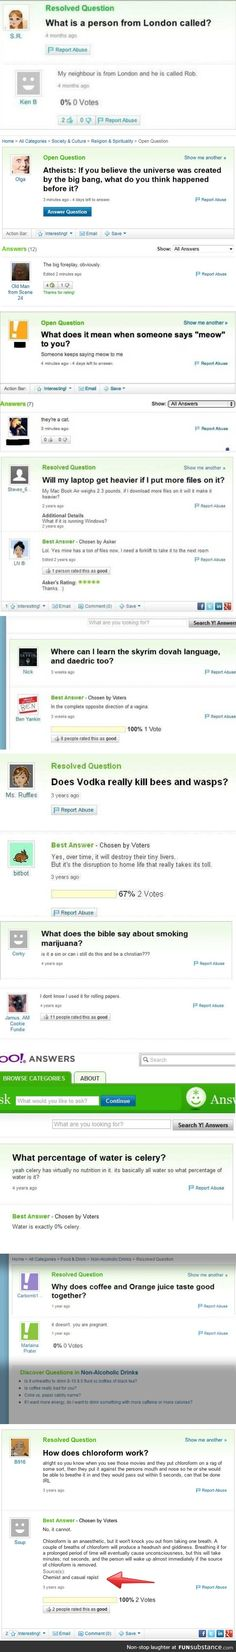 Yahoo answers comp